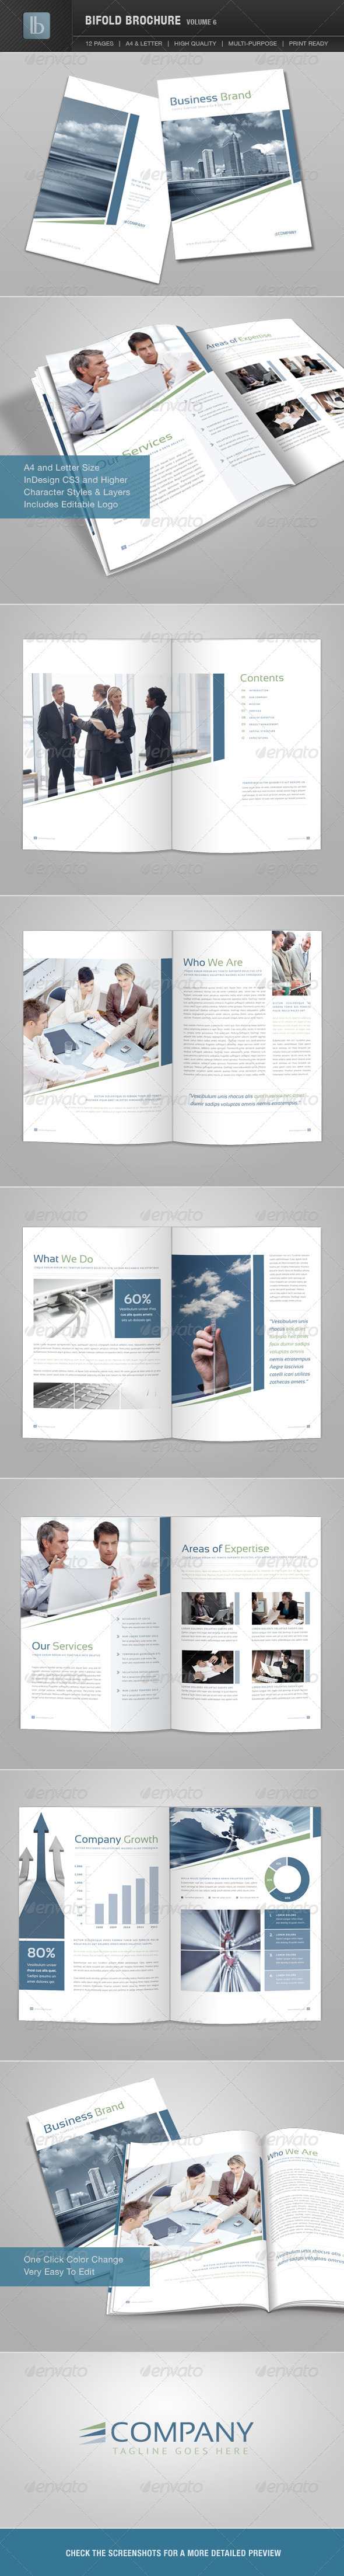 Bifold Brochure | Volume 6 - Corporate Brochures